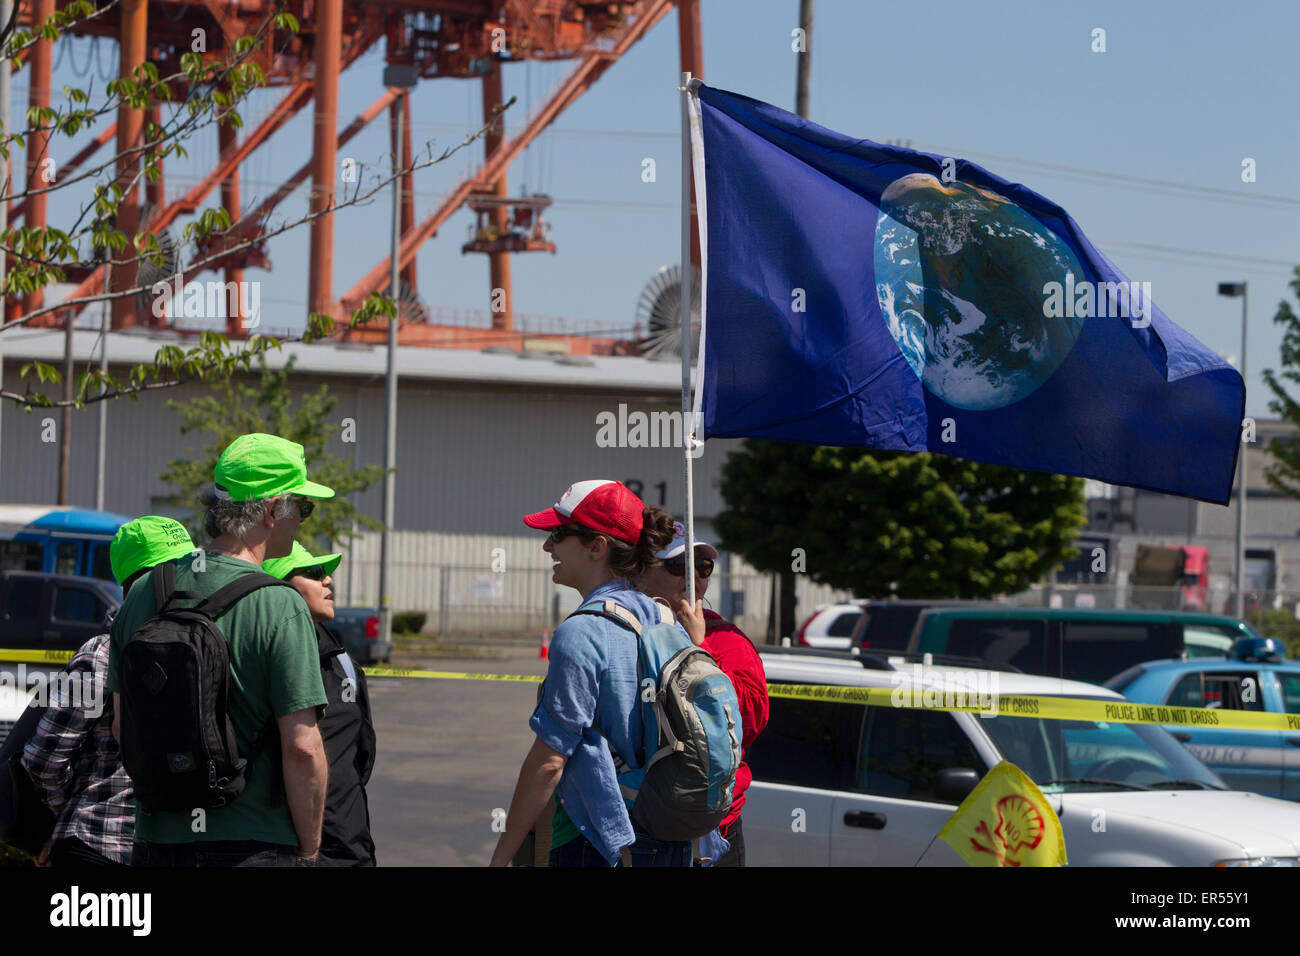 Protest Against Royal Dutch Shell's Floating Oil Drill Rig, Polar Pioneer, Seattle, Washington, USA, May 18, 2015 Stock Photo